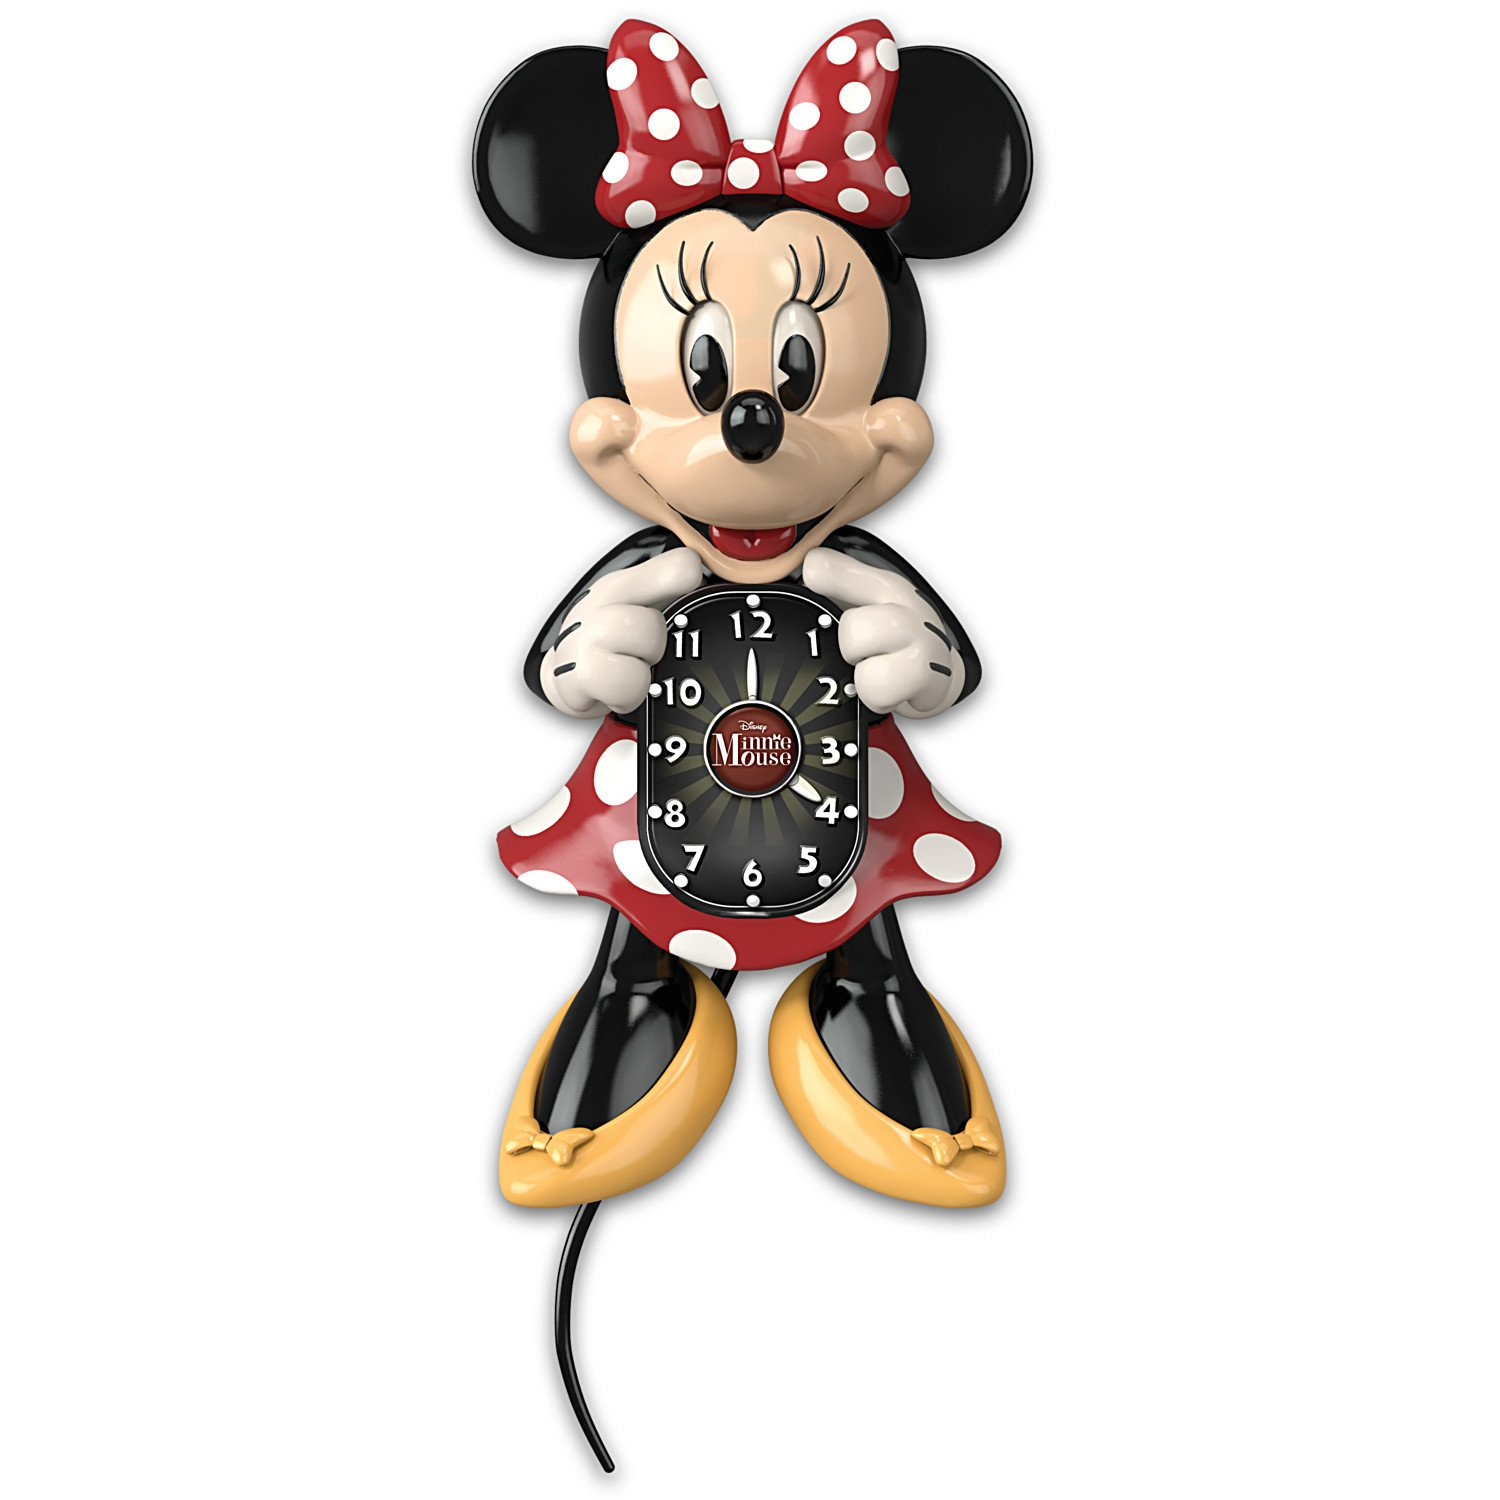 Disney Minnie Mouse Wall Clock with Moving Eyes and Tail by The Bradford Exchange